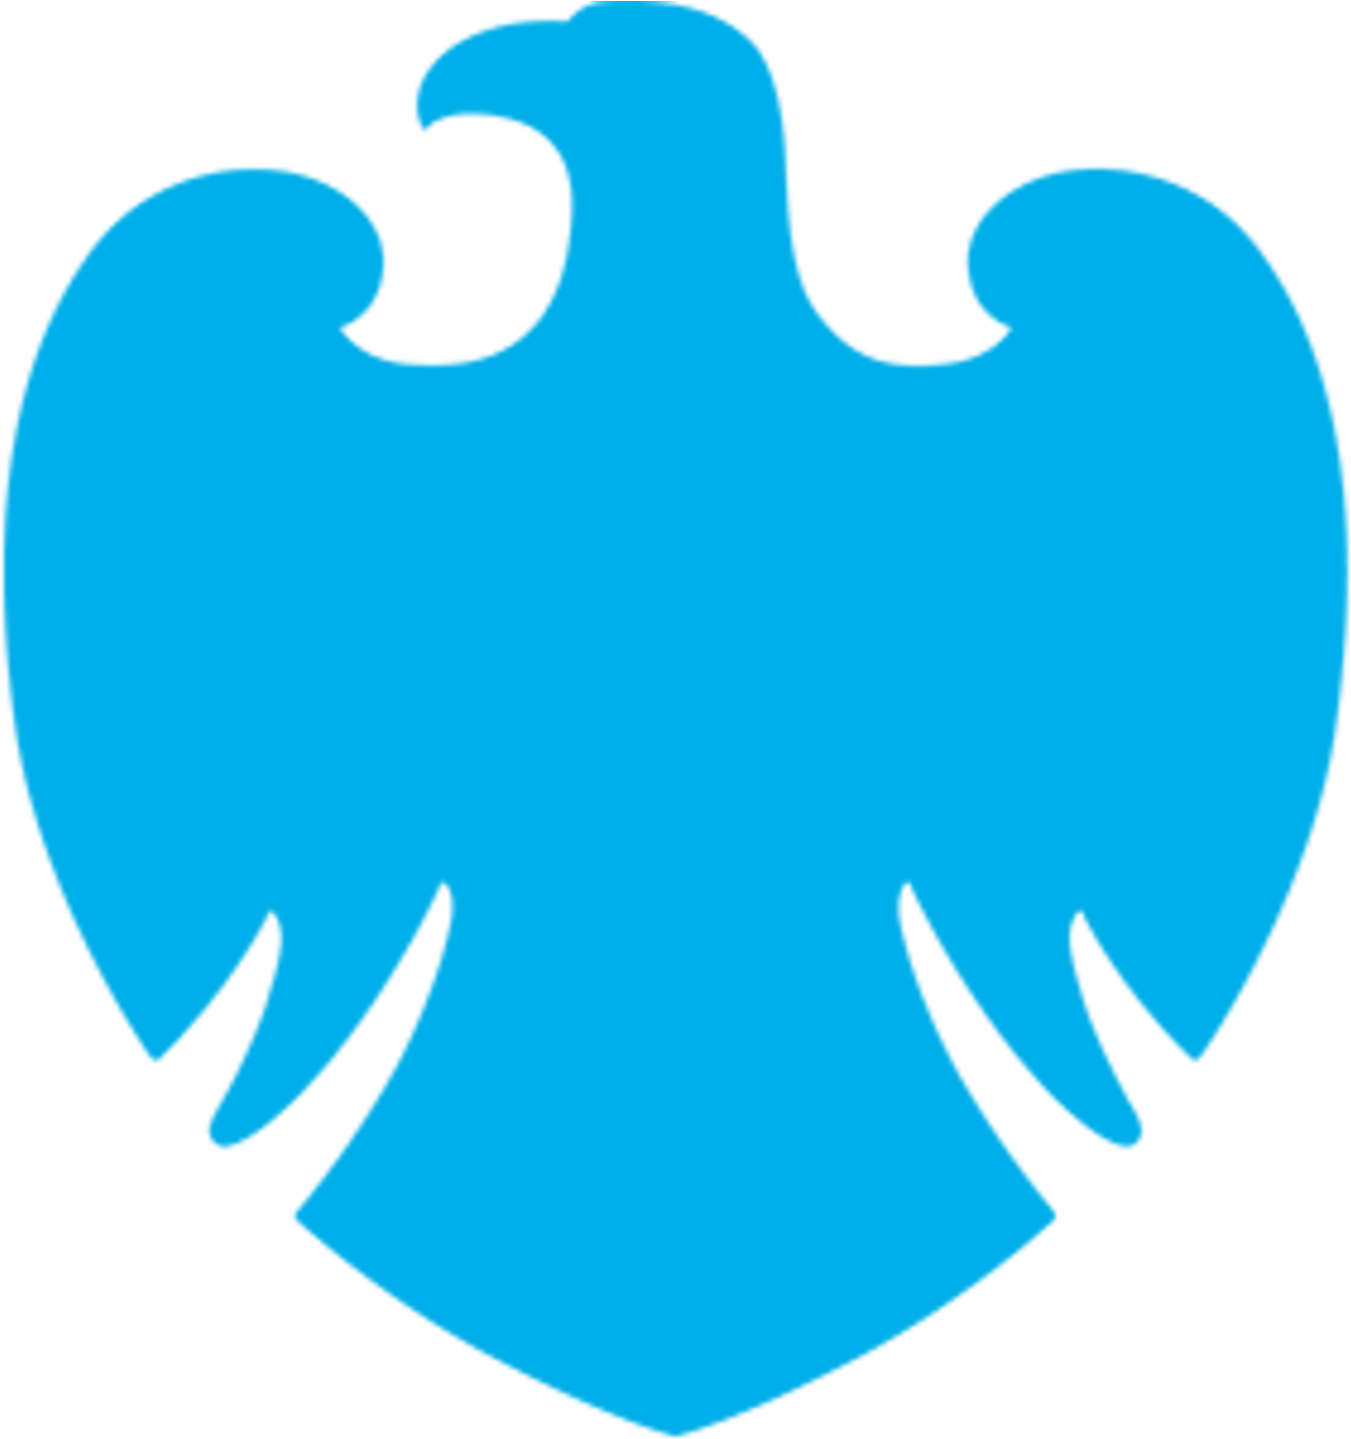 Download Barclays Investment Bank Logo - Full Size PNG Image